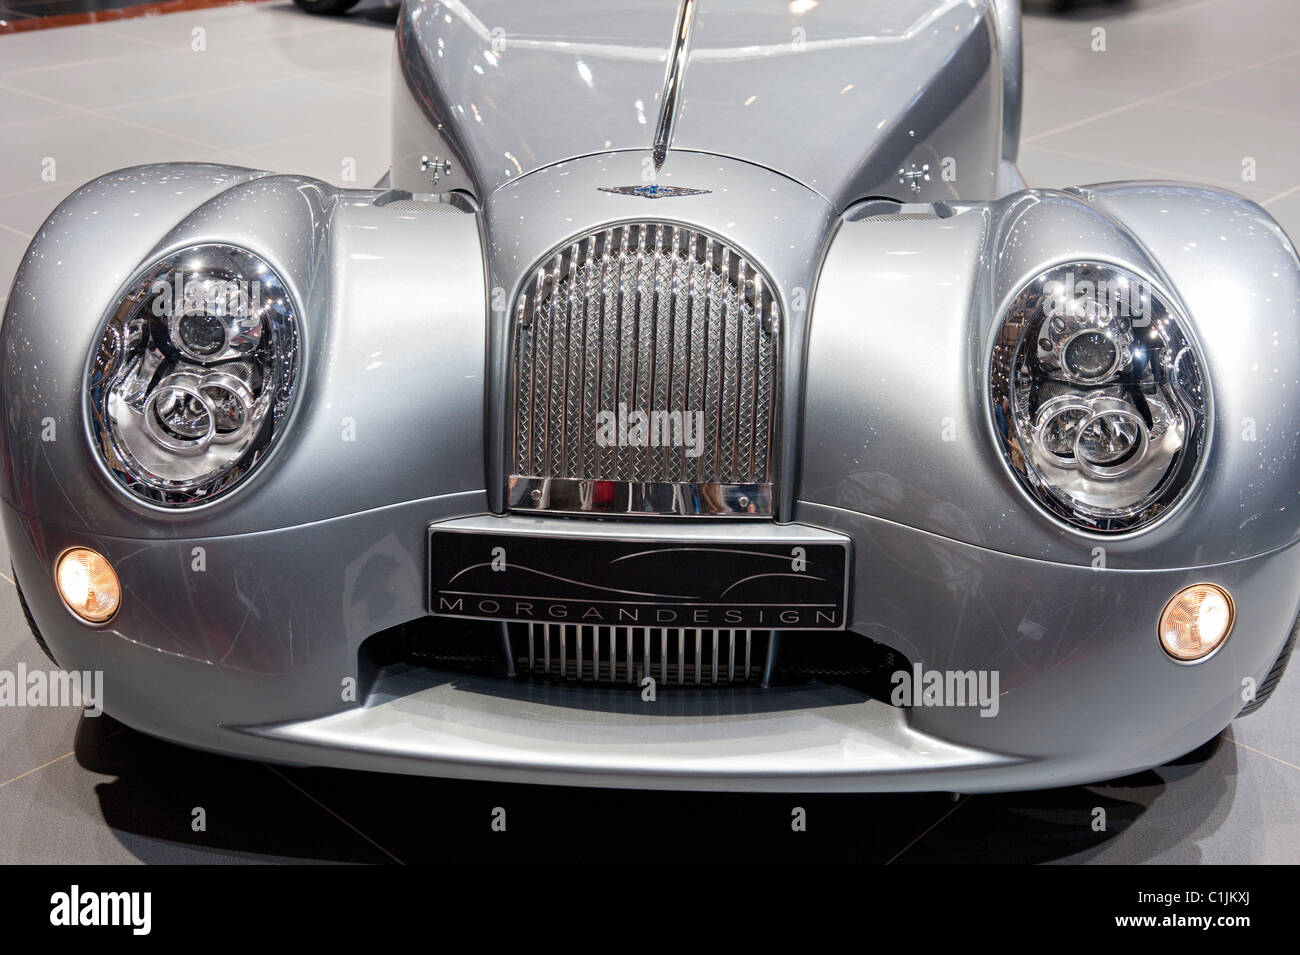 Morgan Aero supersports car on display at Geneva Motor Show 2011 Switzerland Stock Photo